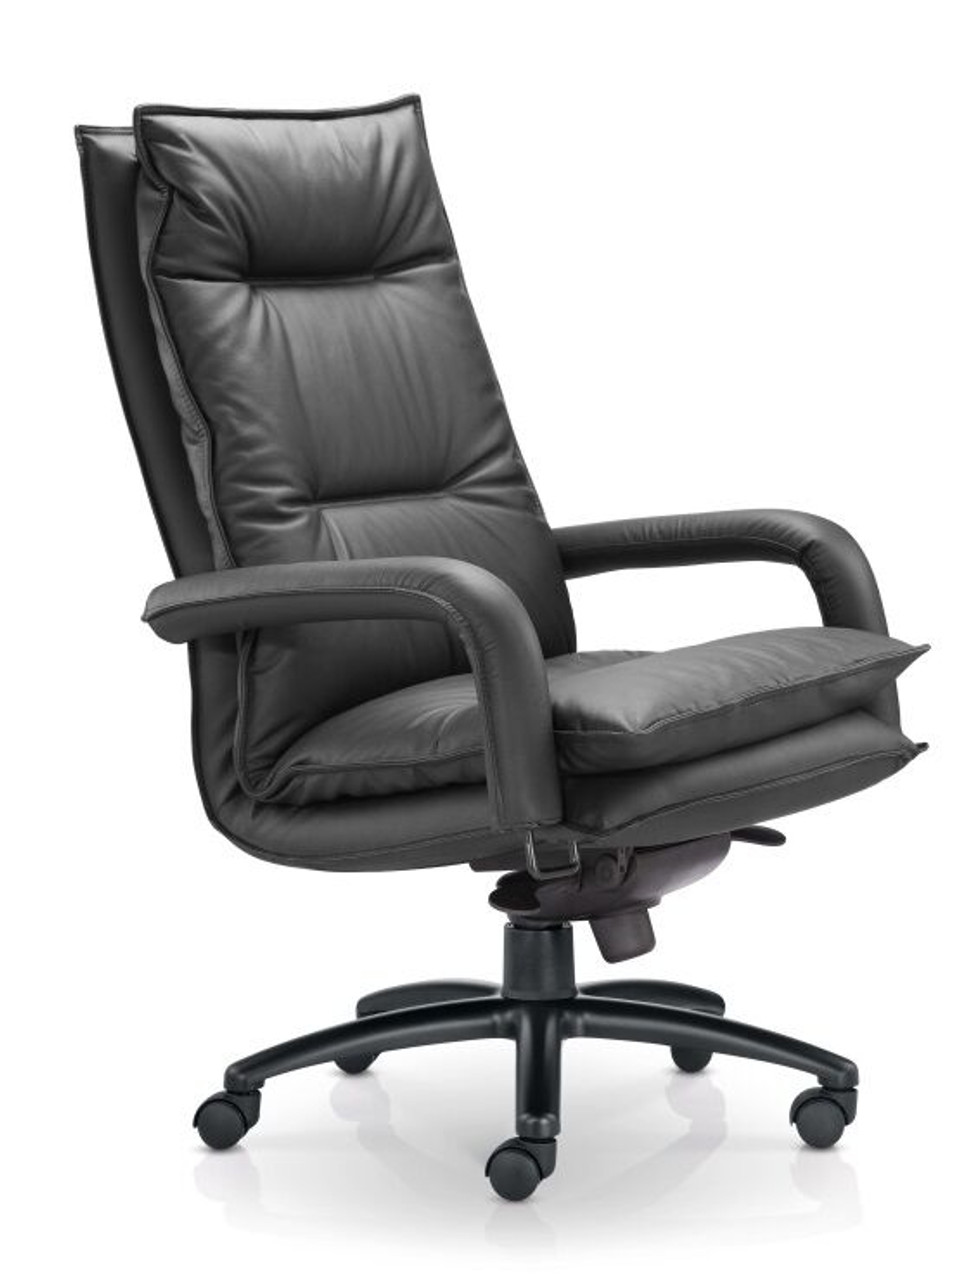 Bliss High Back Leather Office Chair Manager Executive Level Urban Hyve